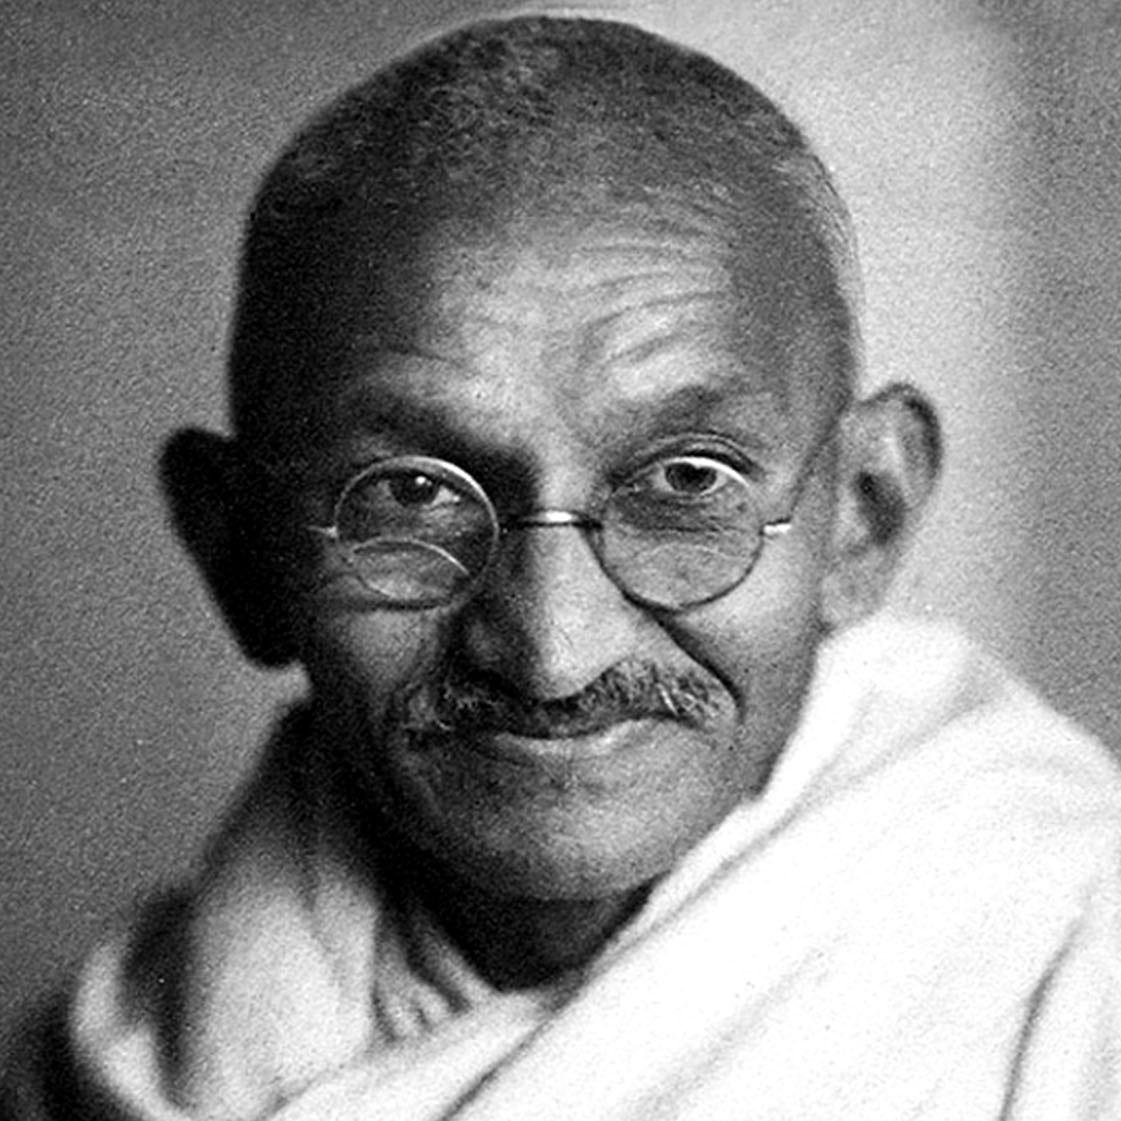 mohandas gandhi Mahatma gandhi was one of the most famous freedom fighters in the history of mankind he led india in its struggle for freedom against the british rule.